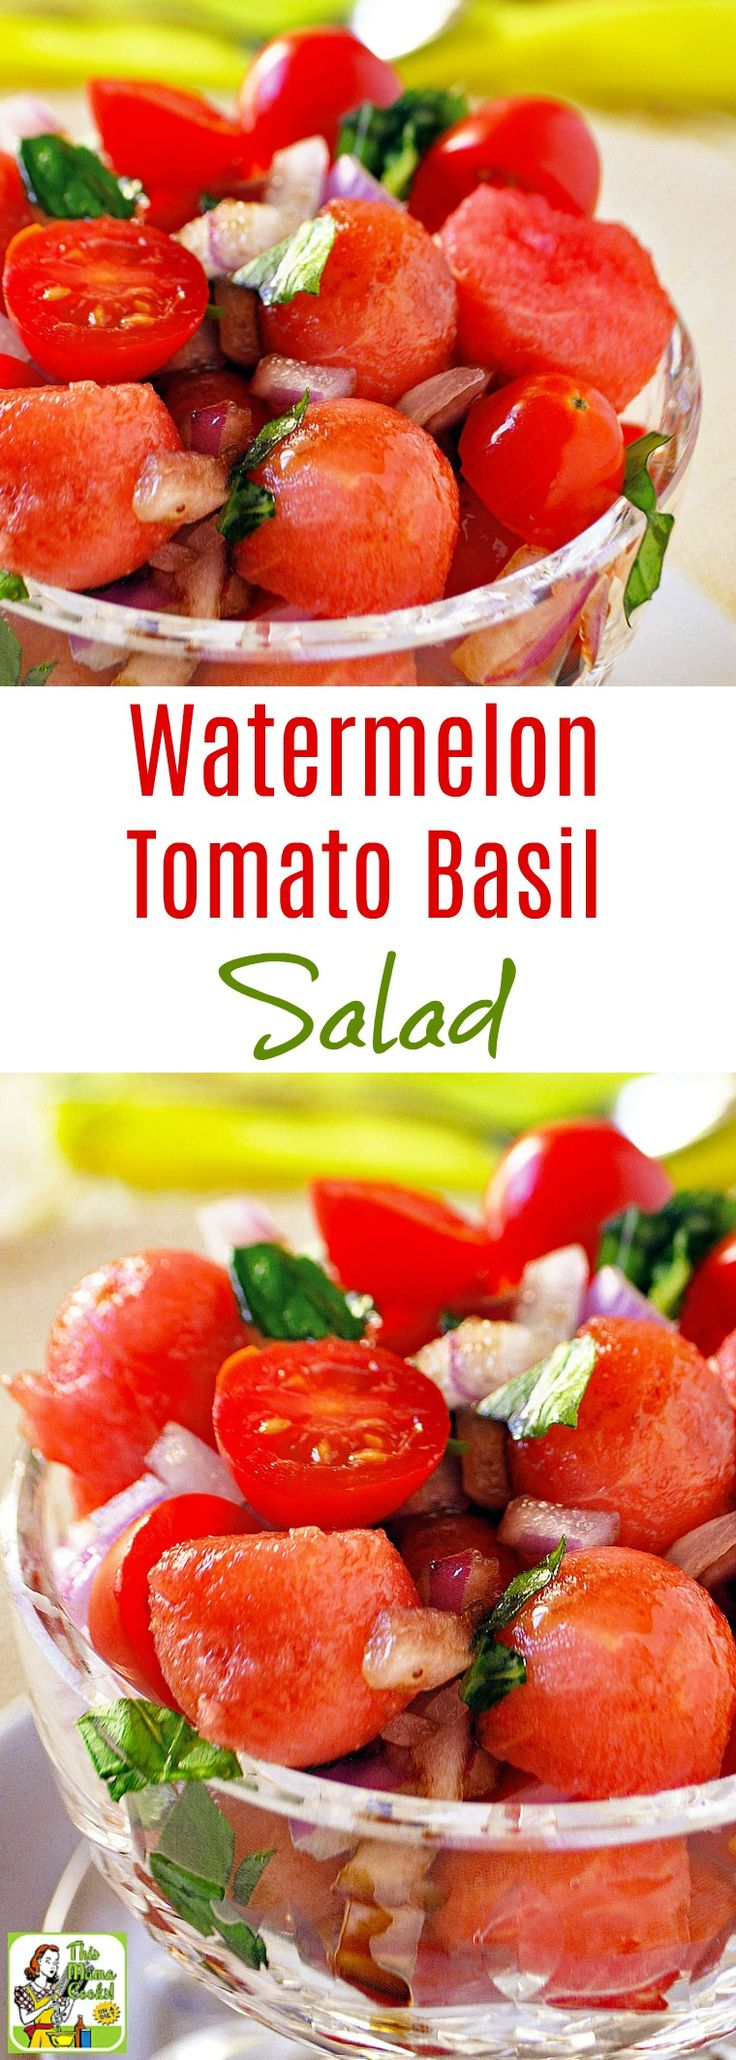 This Easy Watermelon Tomato Basil Salad recipe is ideal for summer cookouts or potlucks. Click to get this tomato basil salad recipe flavored with onions and balsamic vinegar is naturally gluten free. This easy to make watermelon and tomato salad is also vegan, vegetarian, dairy free, and can be made in 20 minutes.